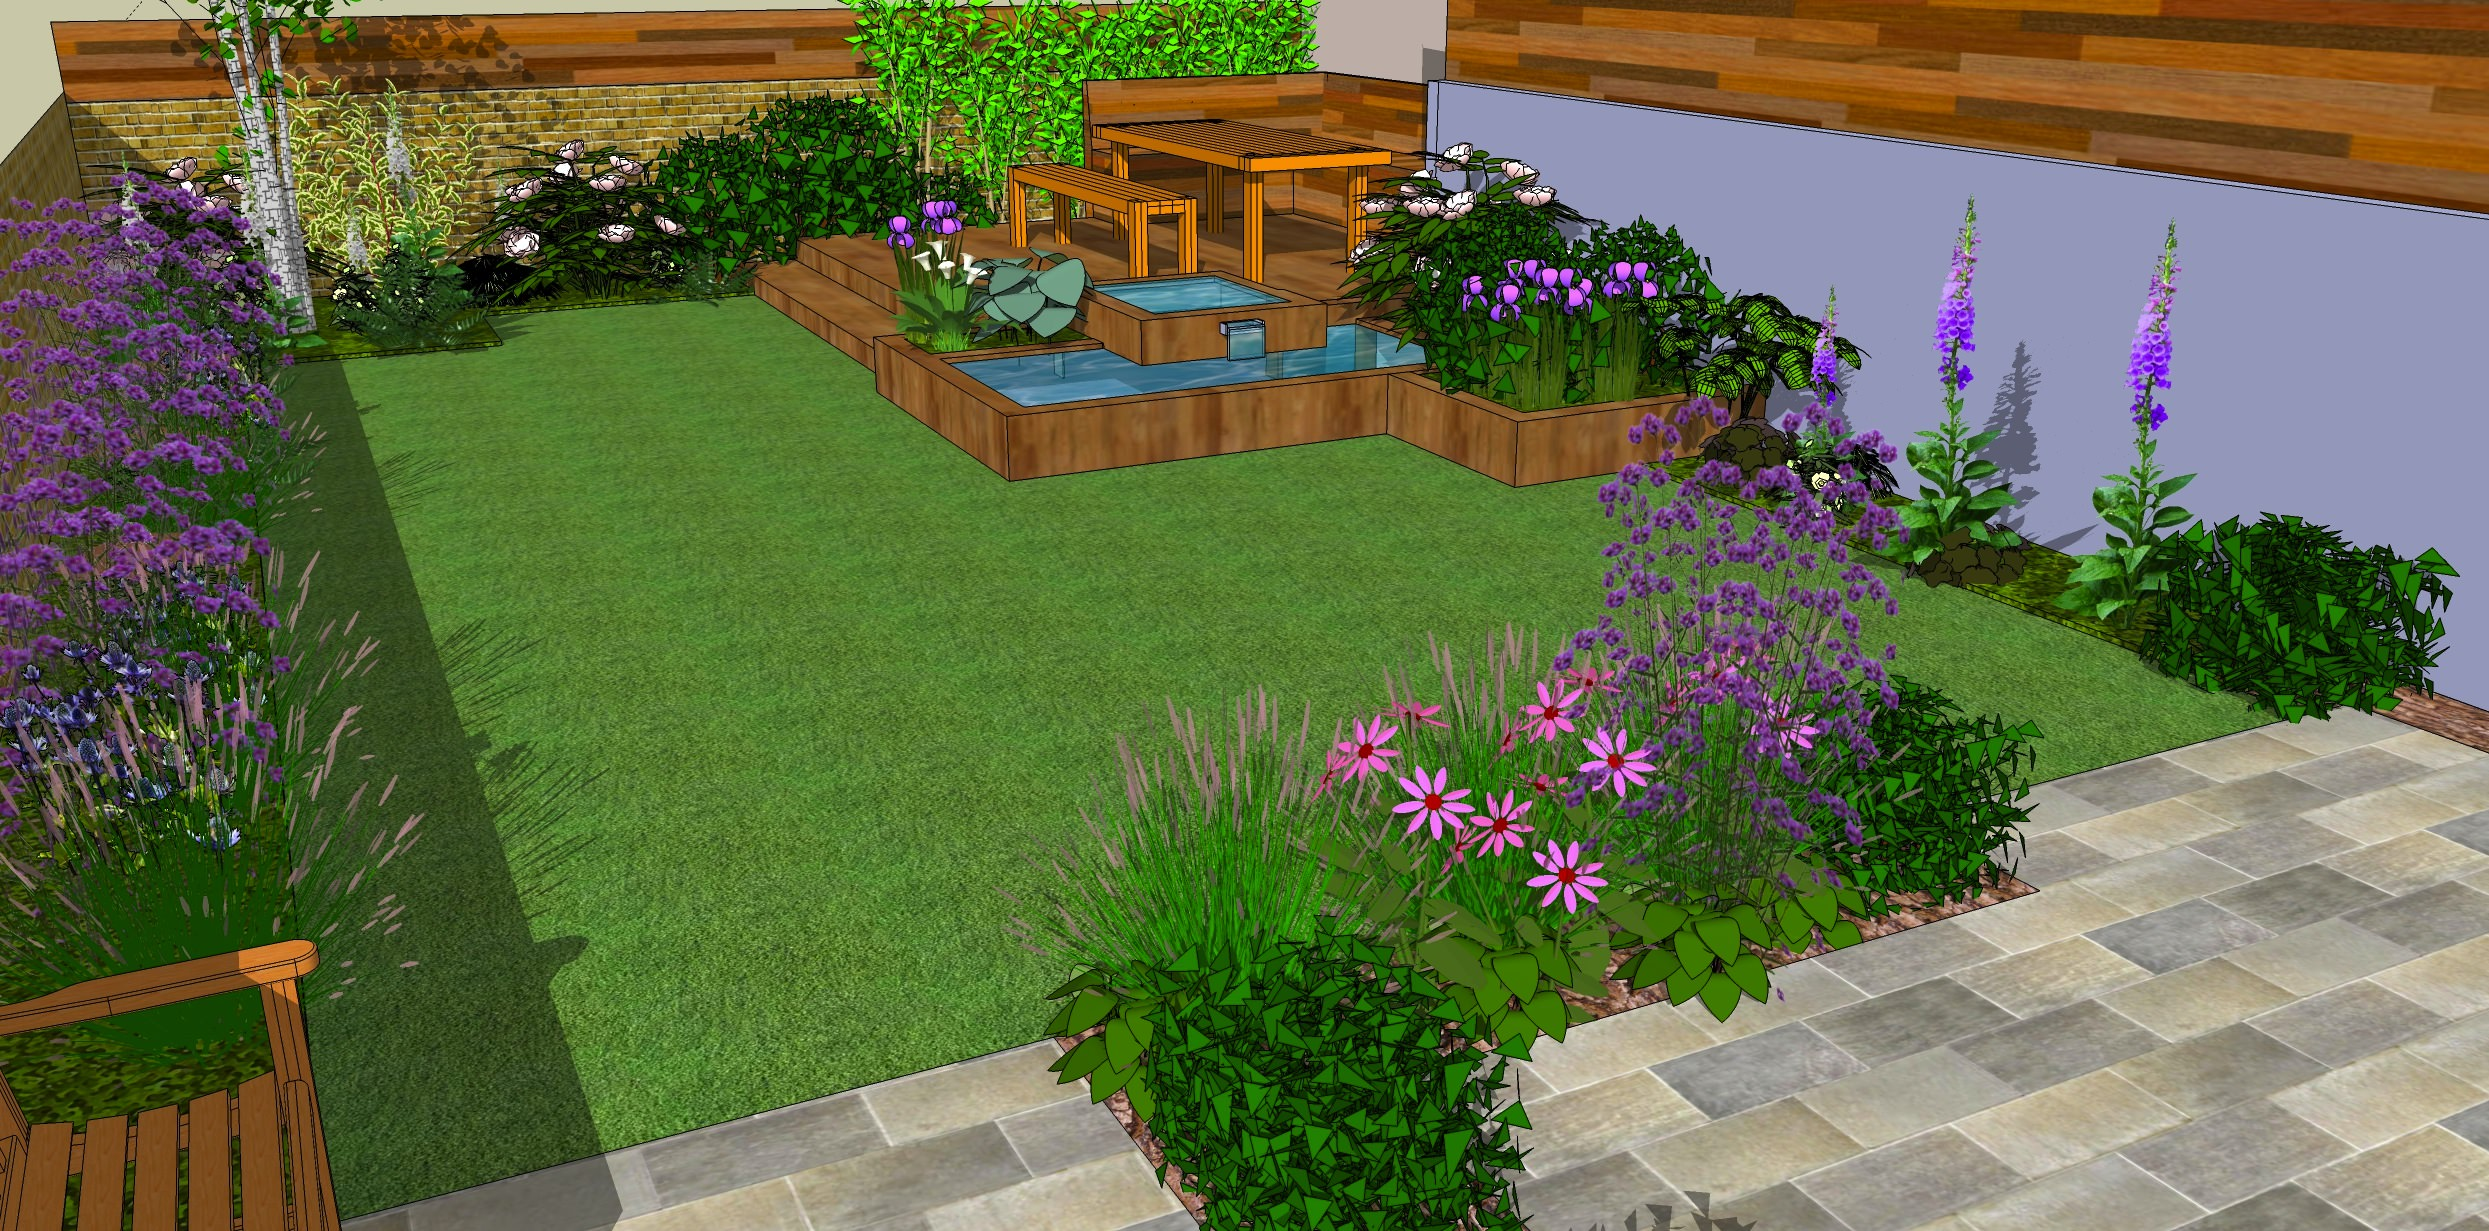 Low maintenance garden designs garden club london for Garden design plans uk